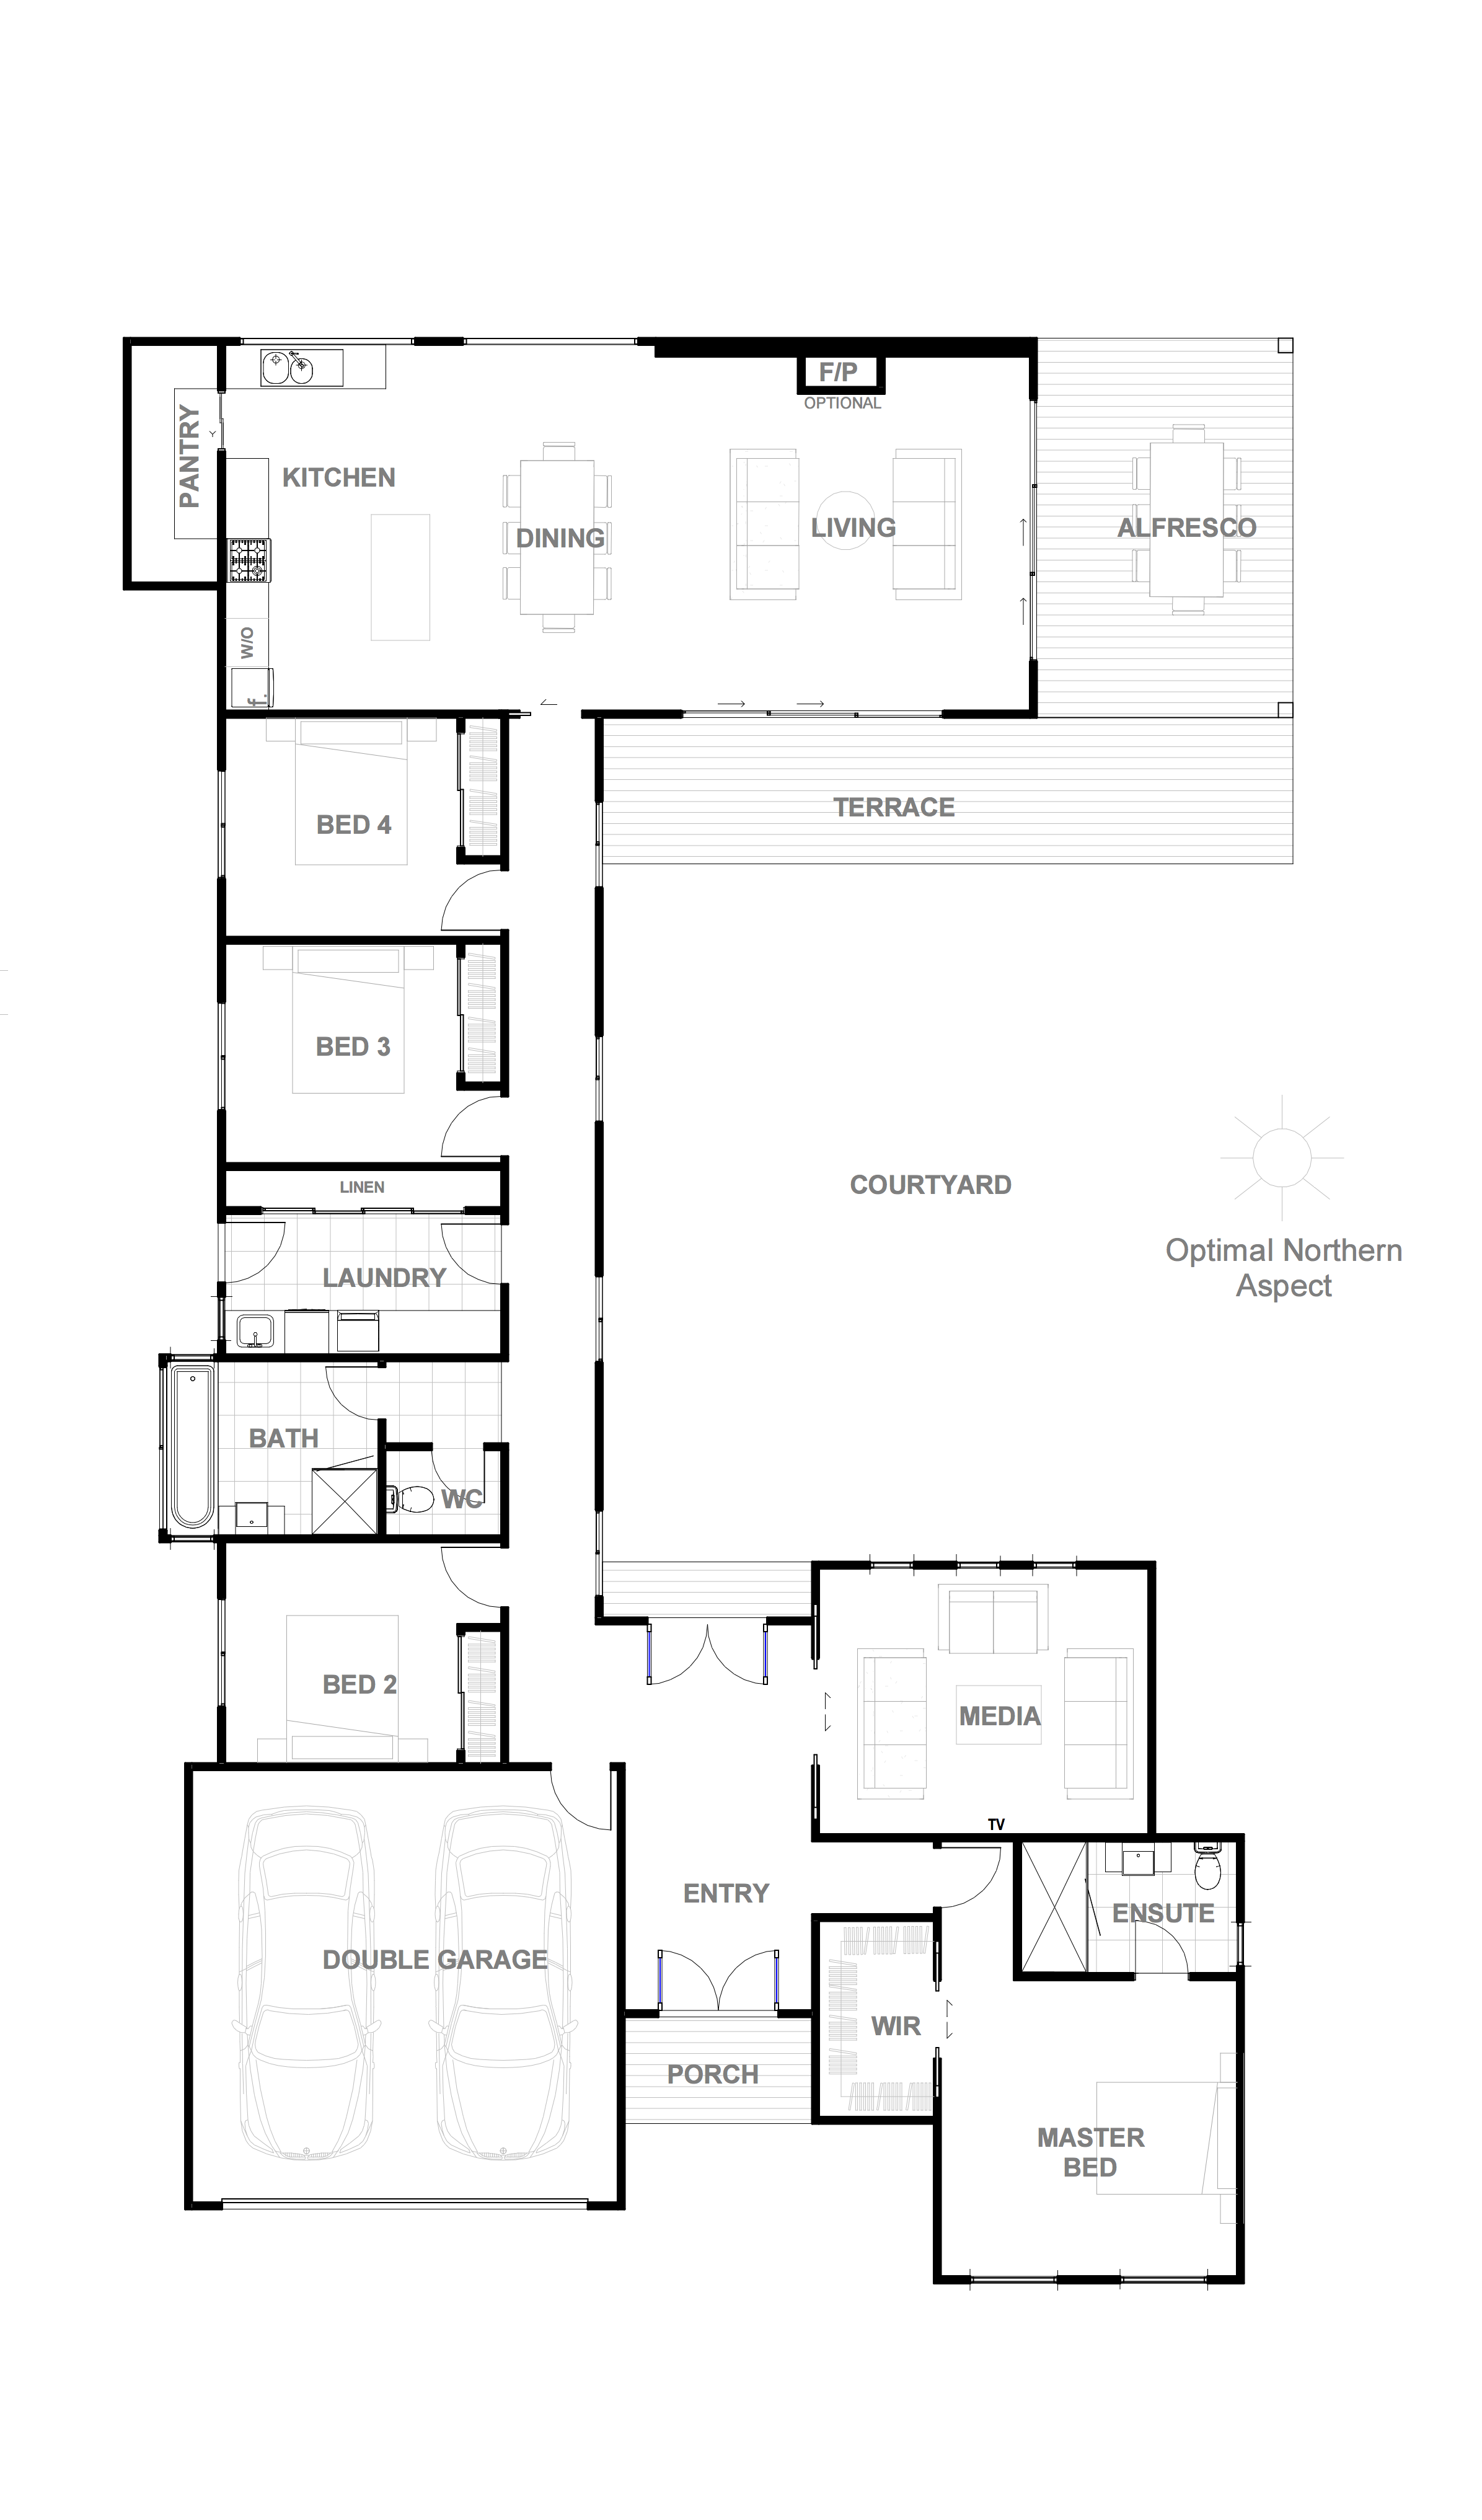 Whangamata Green Homes New Zealand In 2020 Energy Efficient House Plans Energy Efficient Homes Floor Plan Design